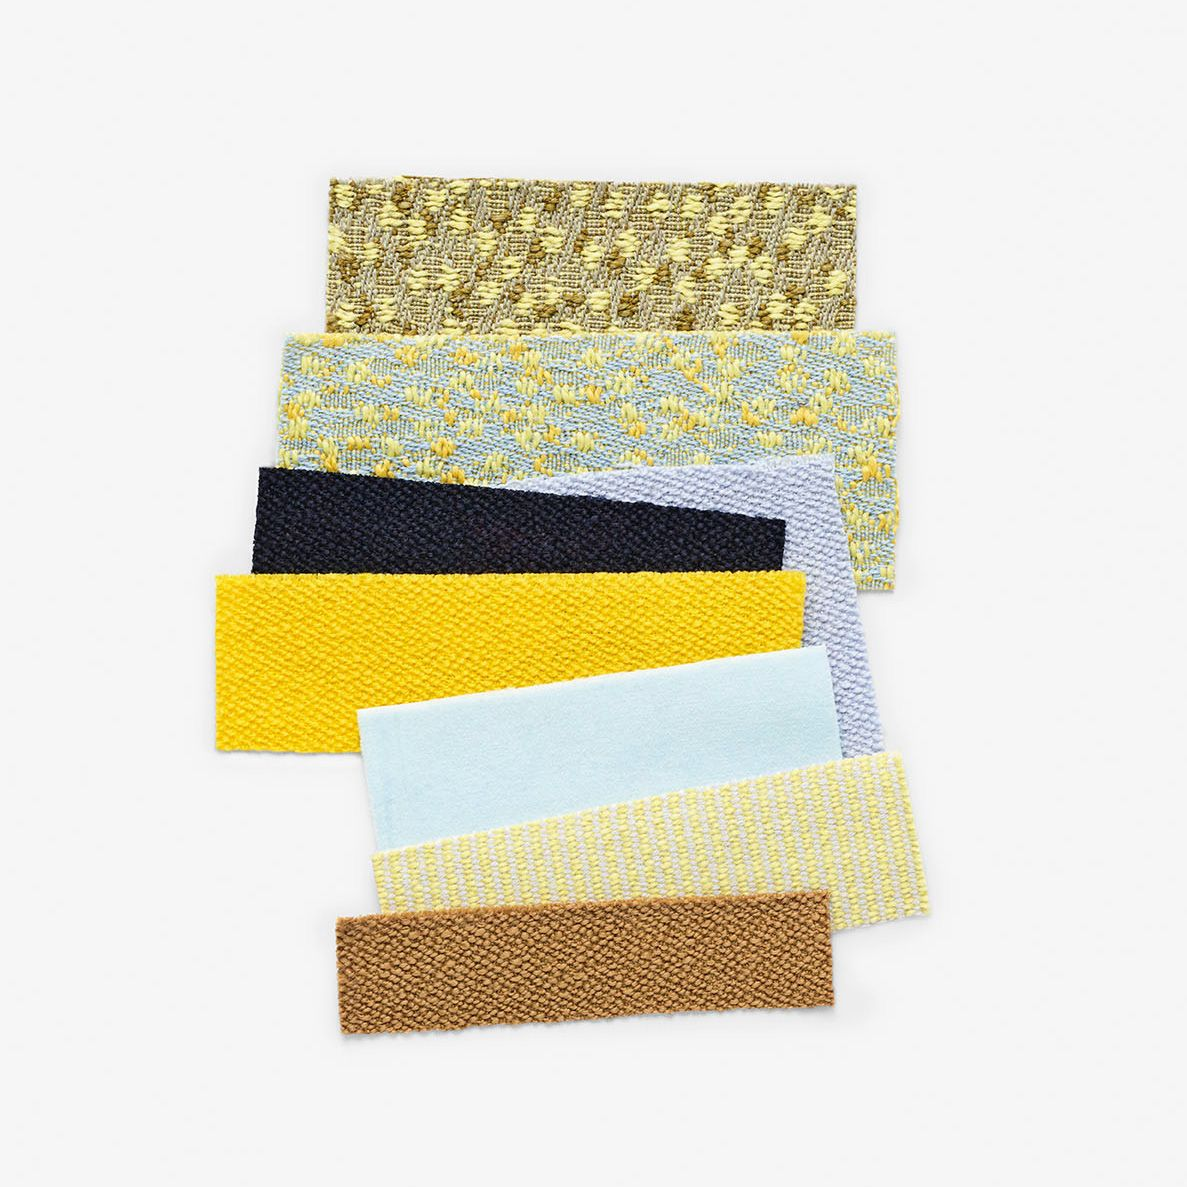 The soft summery palette of the new Kvadrat/Raf Simons collection